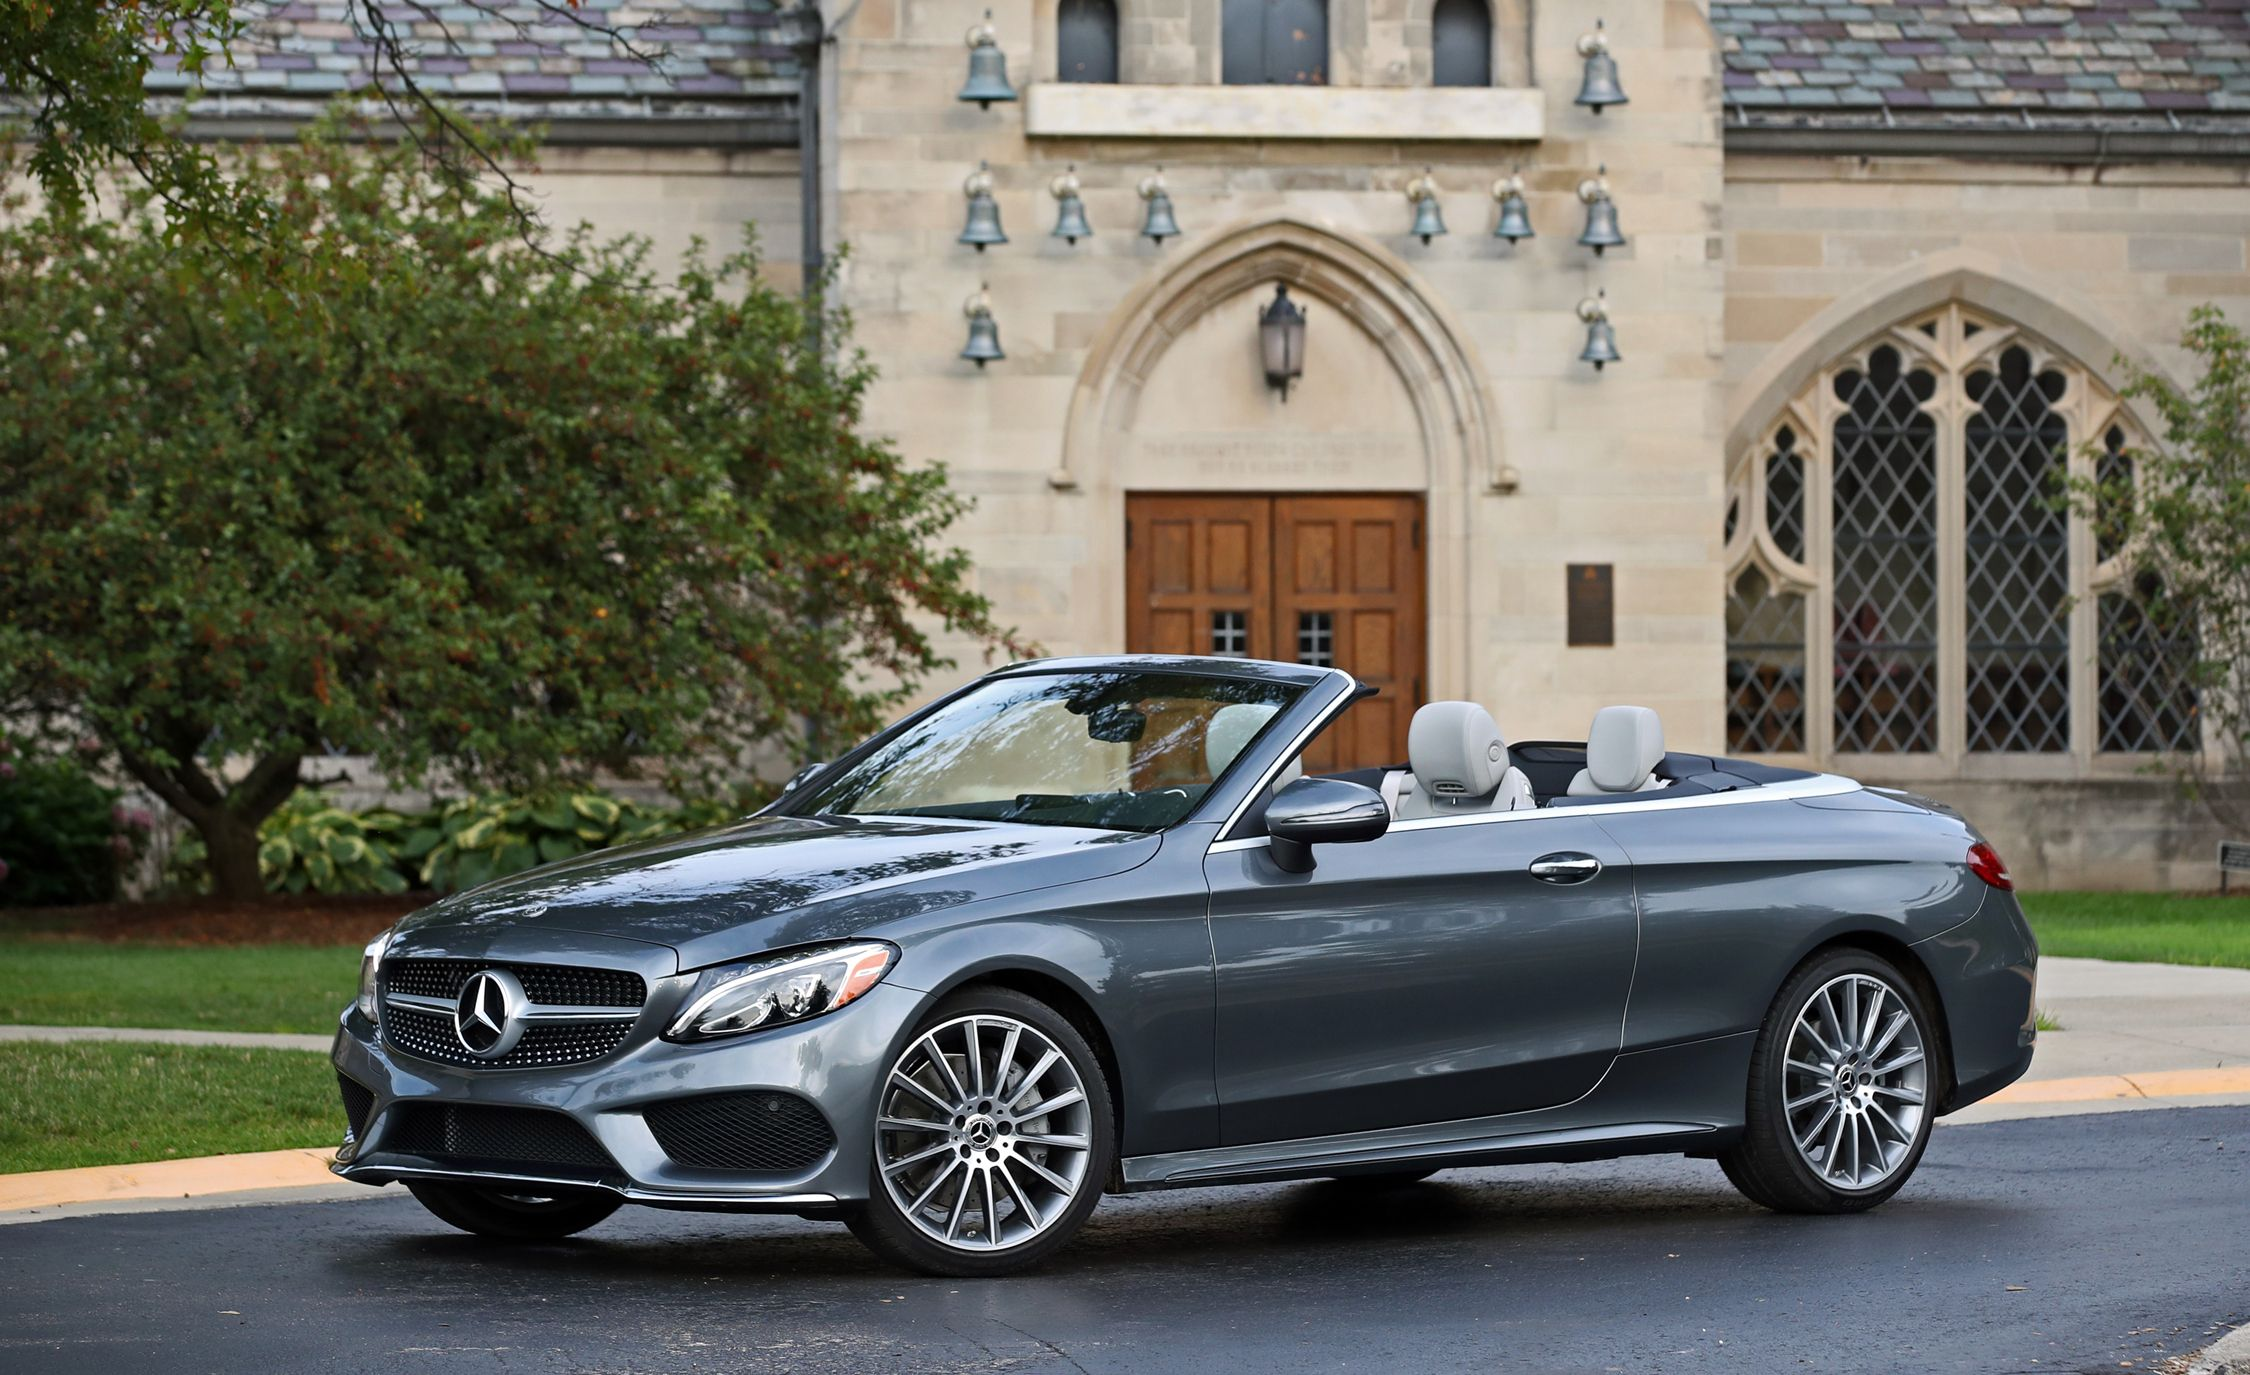 2015 Mercedes Benz C300 4MATIC Test Review